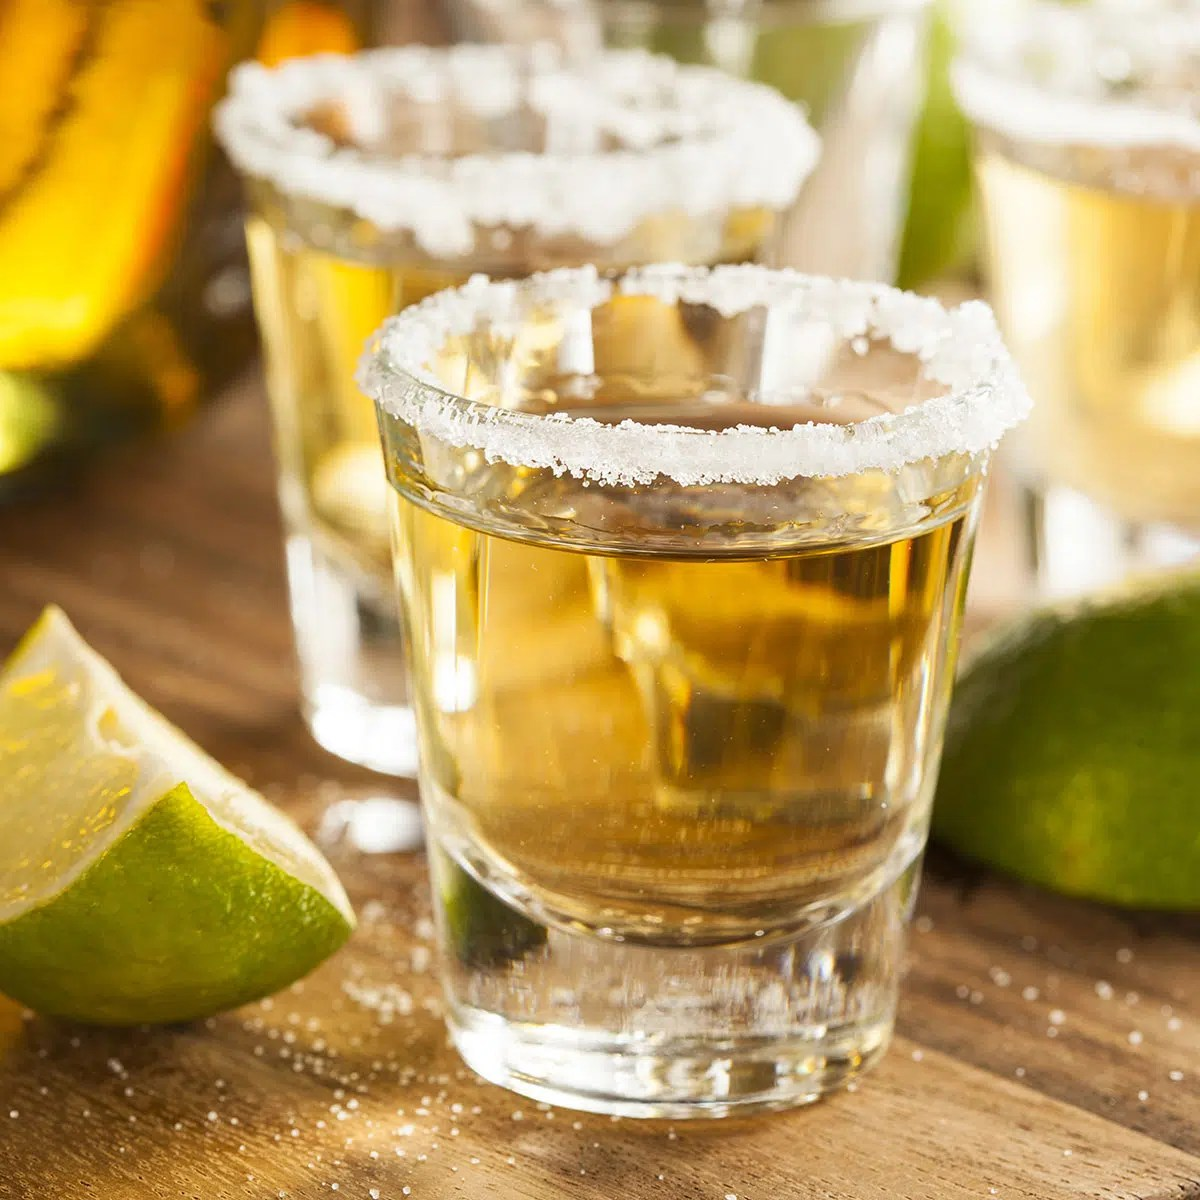 NATIONAL TEQUILA DAY - July 24, 2020 | National Today